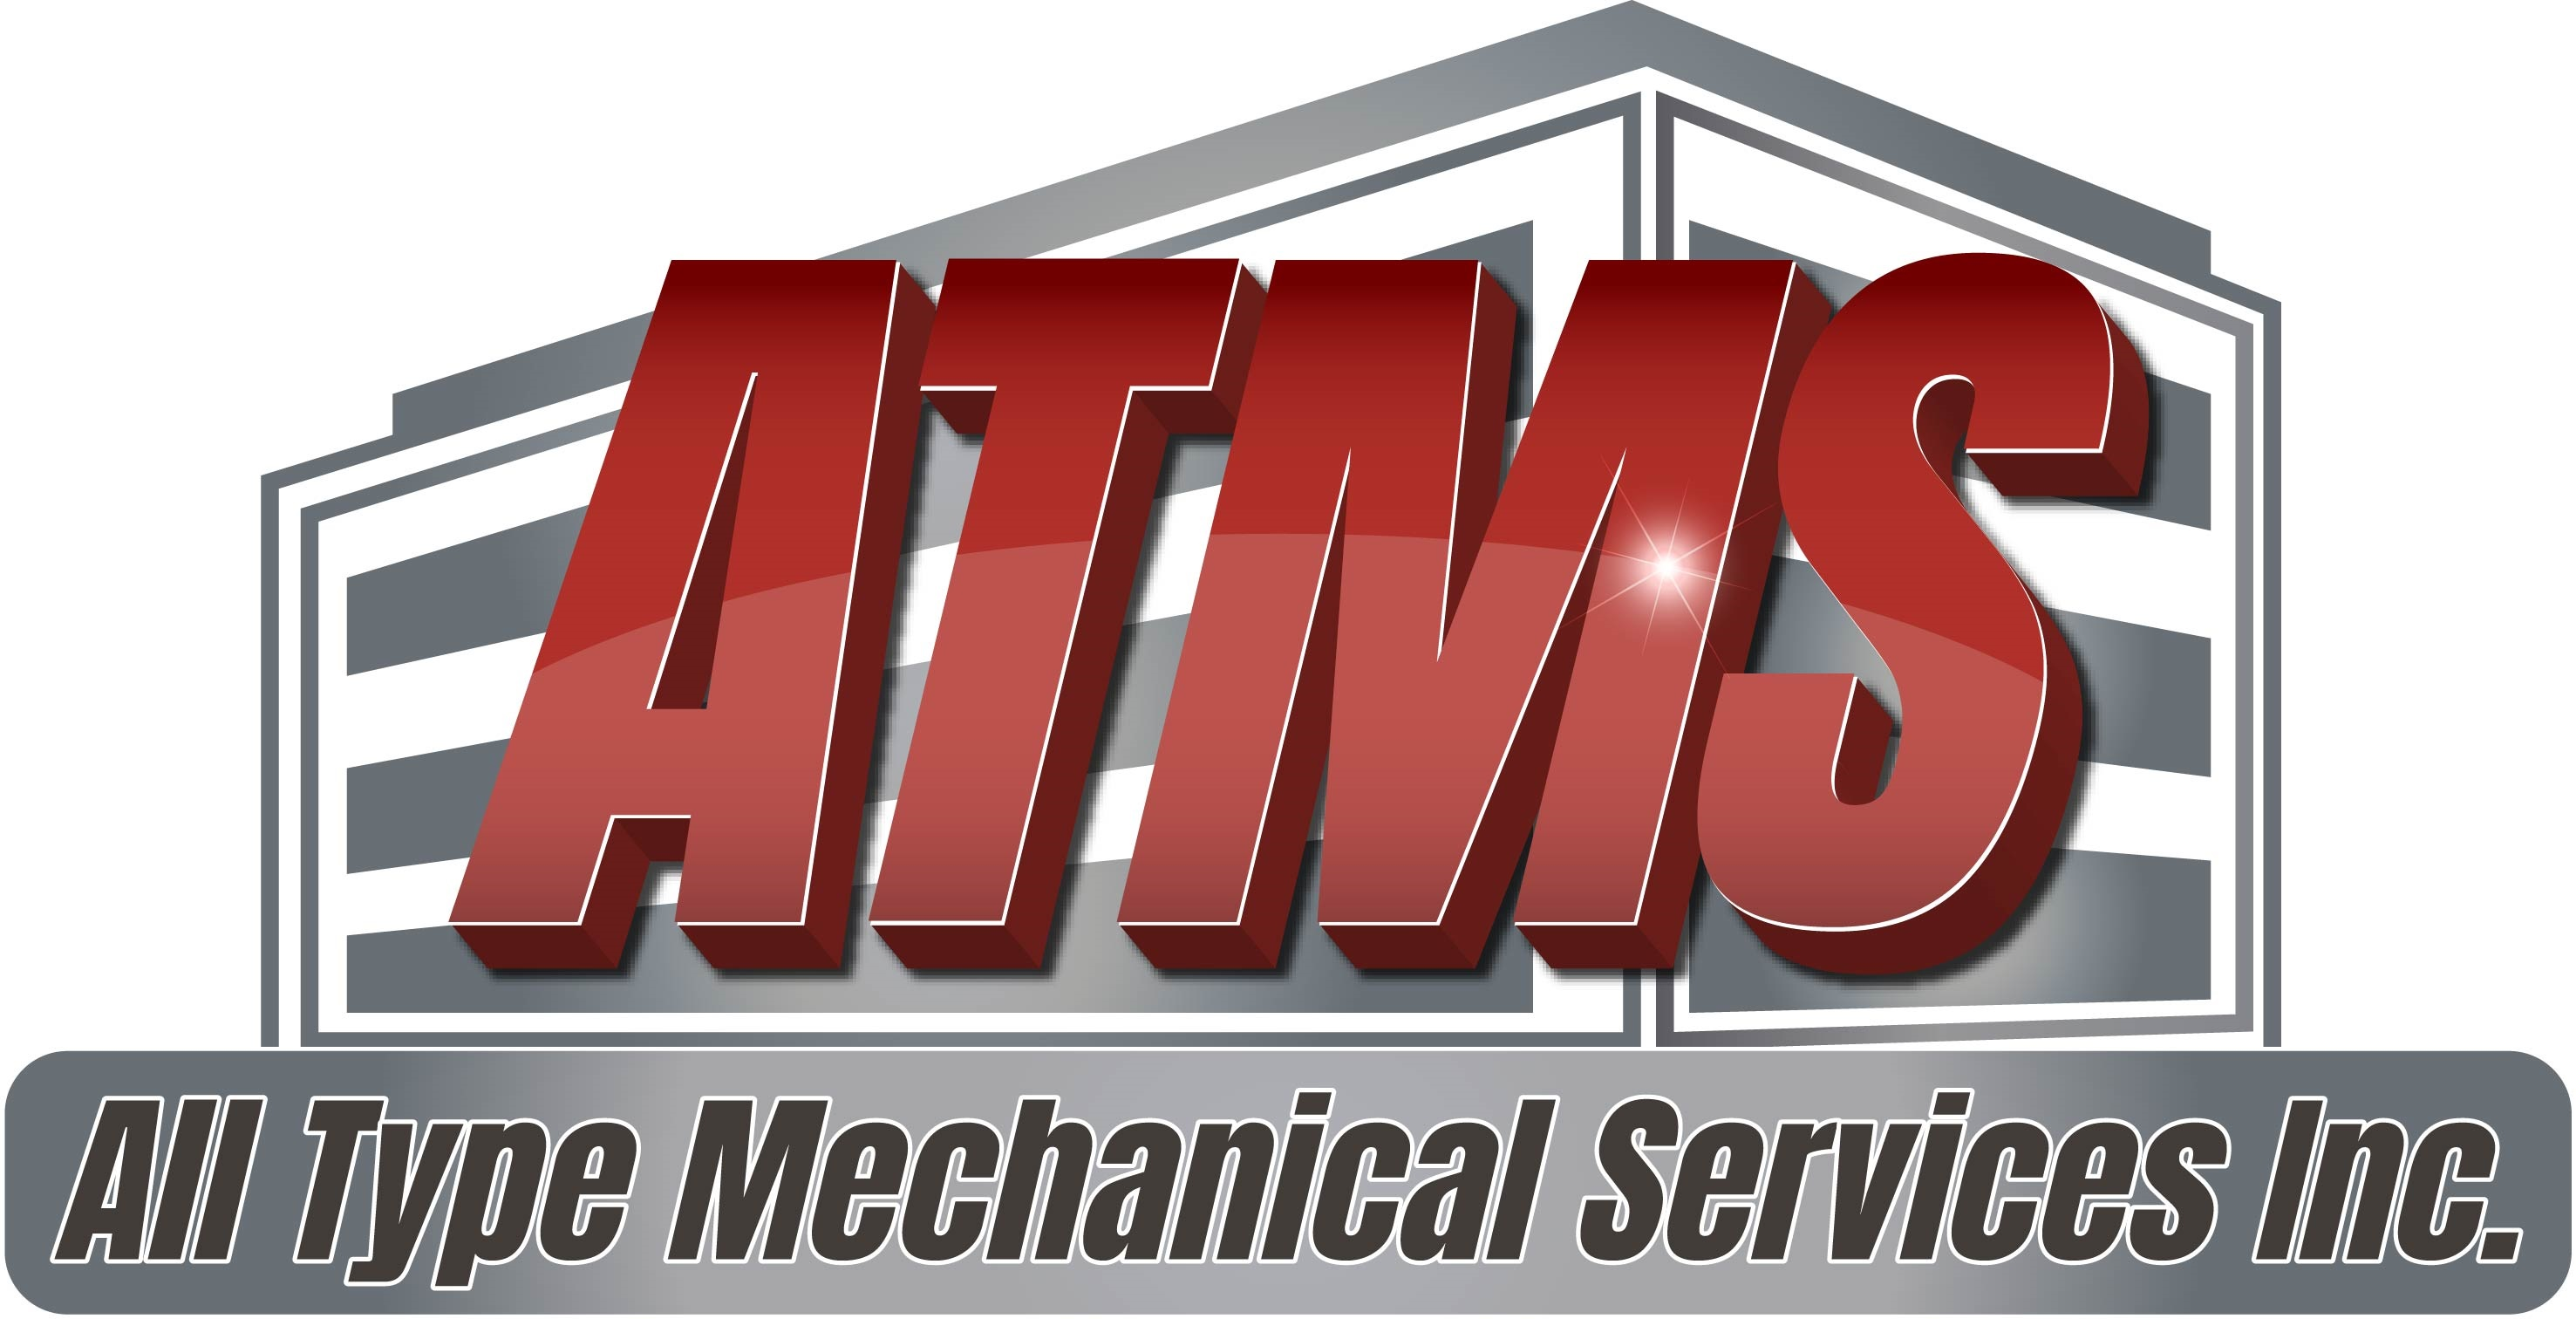 All Type Mechanical Services, Inc. Logo